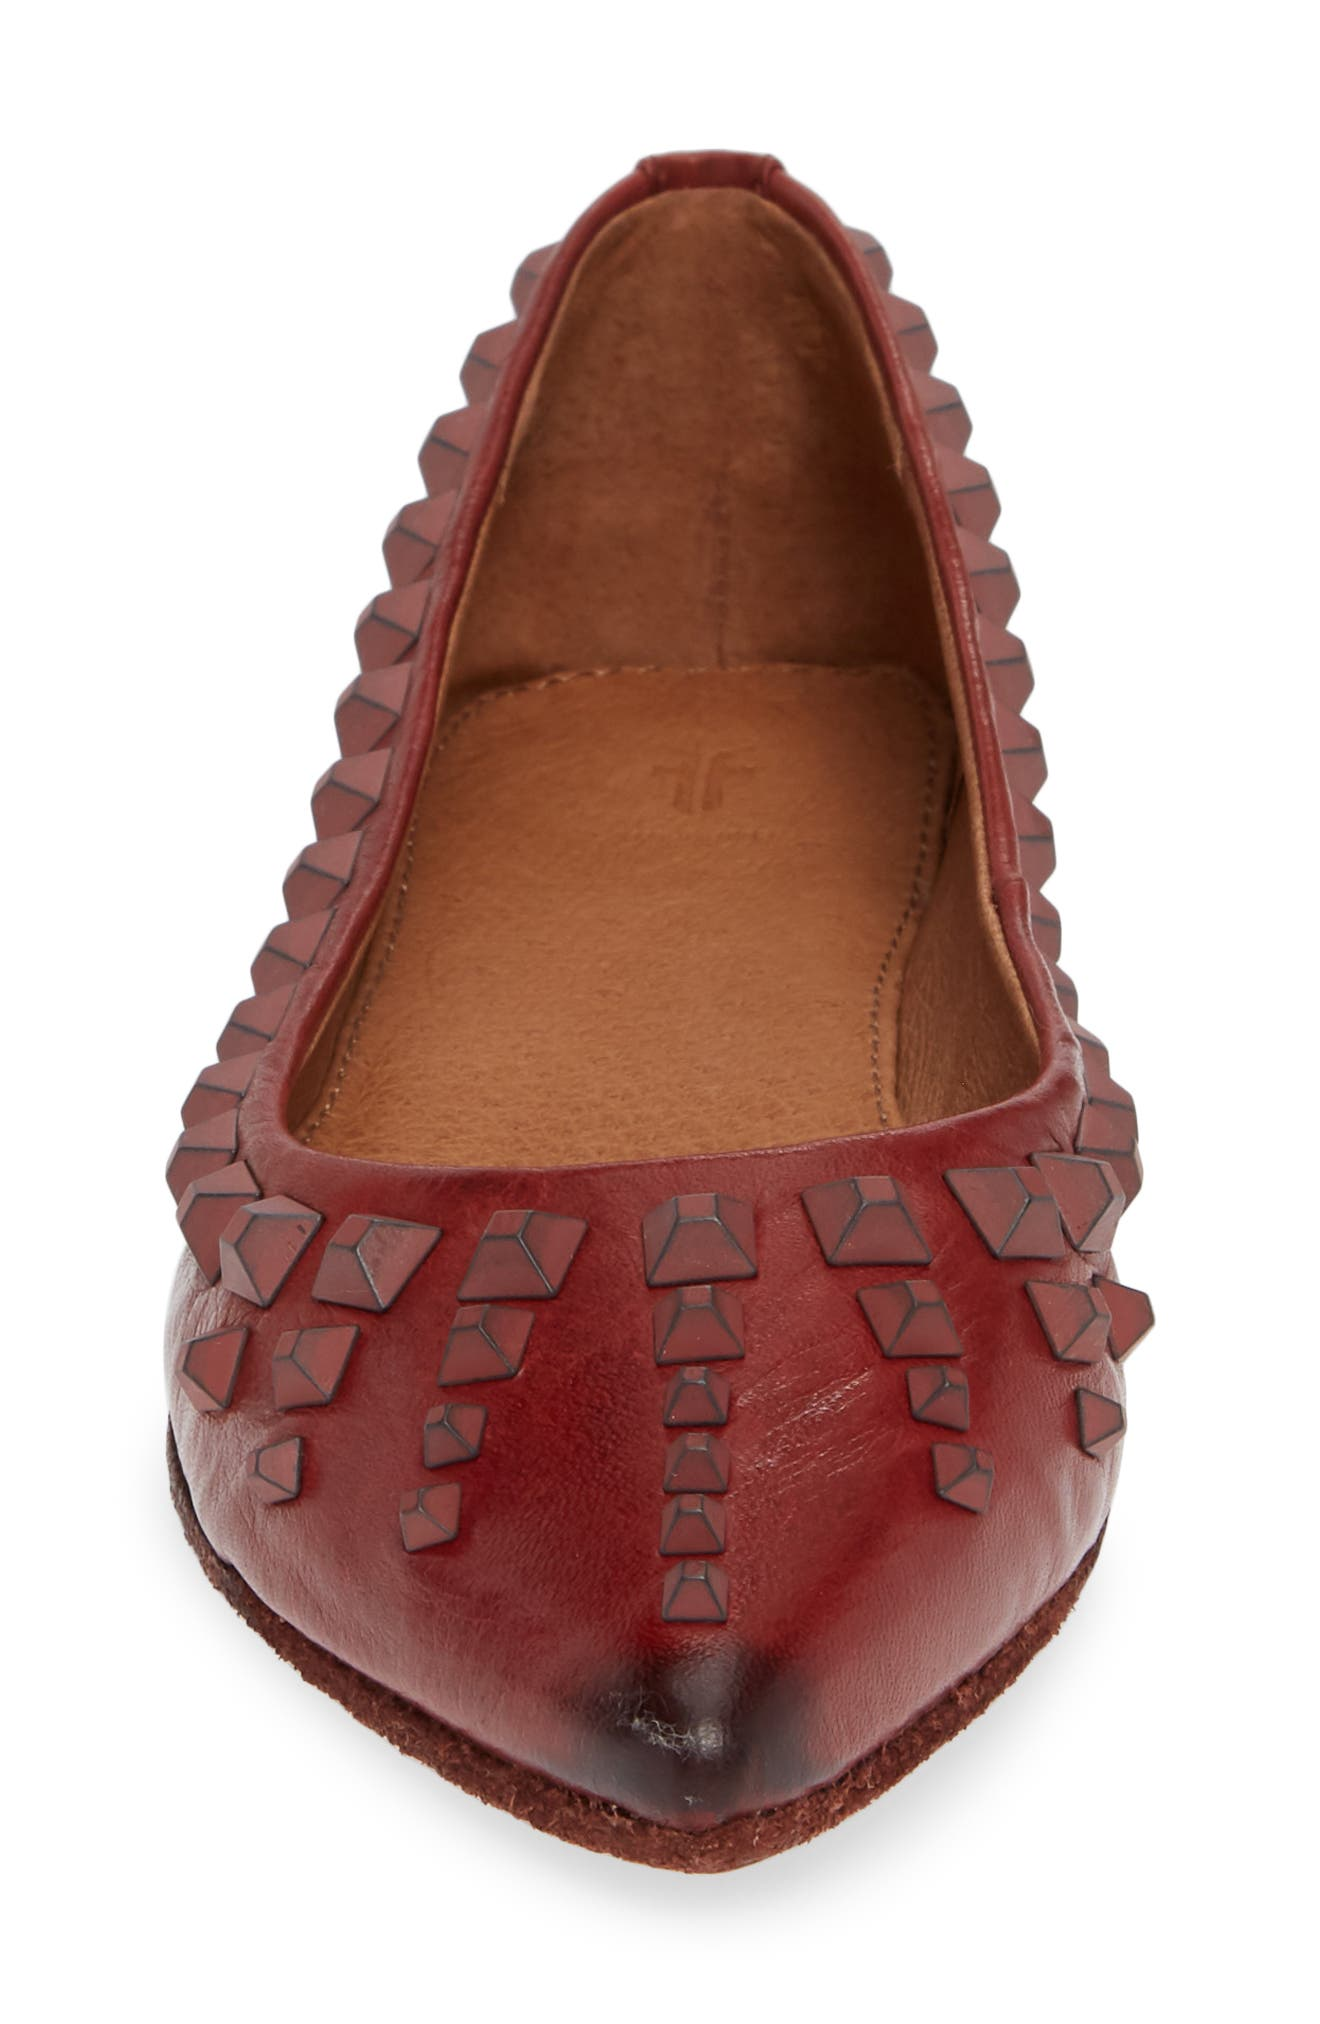 Sienna Deco Stud Ballet Flat,                             Alternate thumbnail 4, color,                             RED CLAY LEATHER